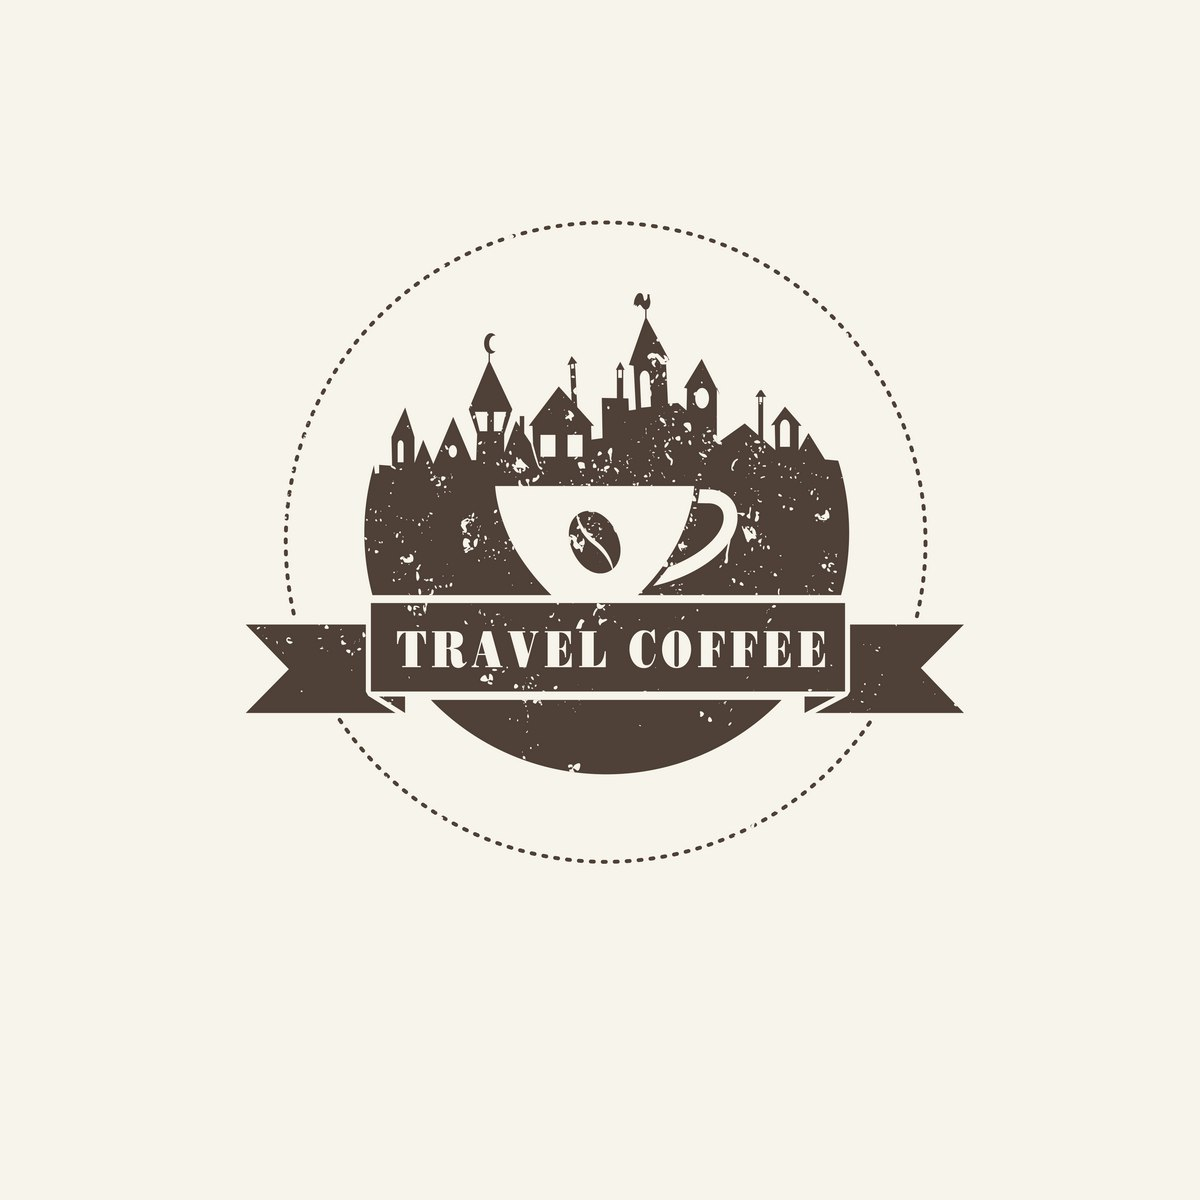 Travel Coffee. Кофейня